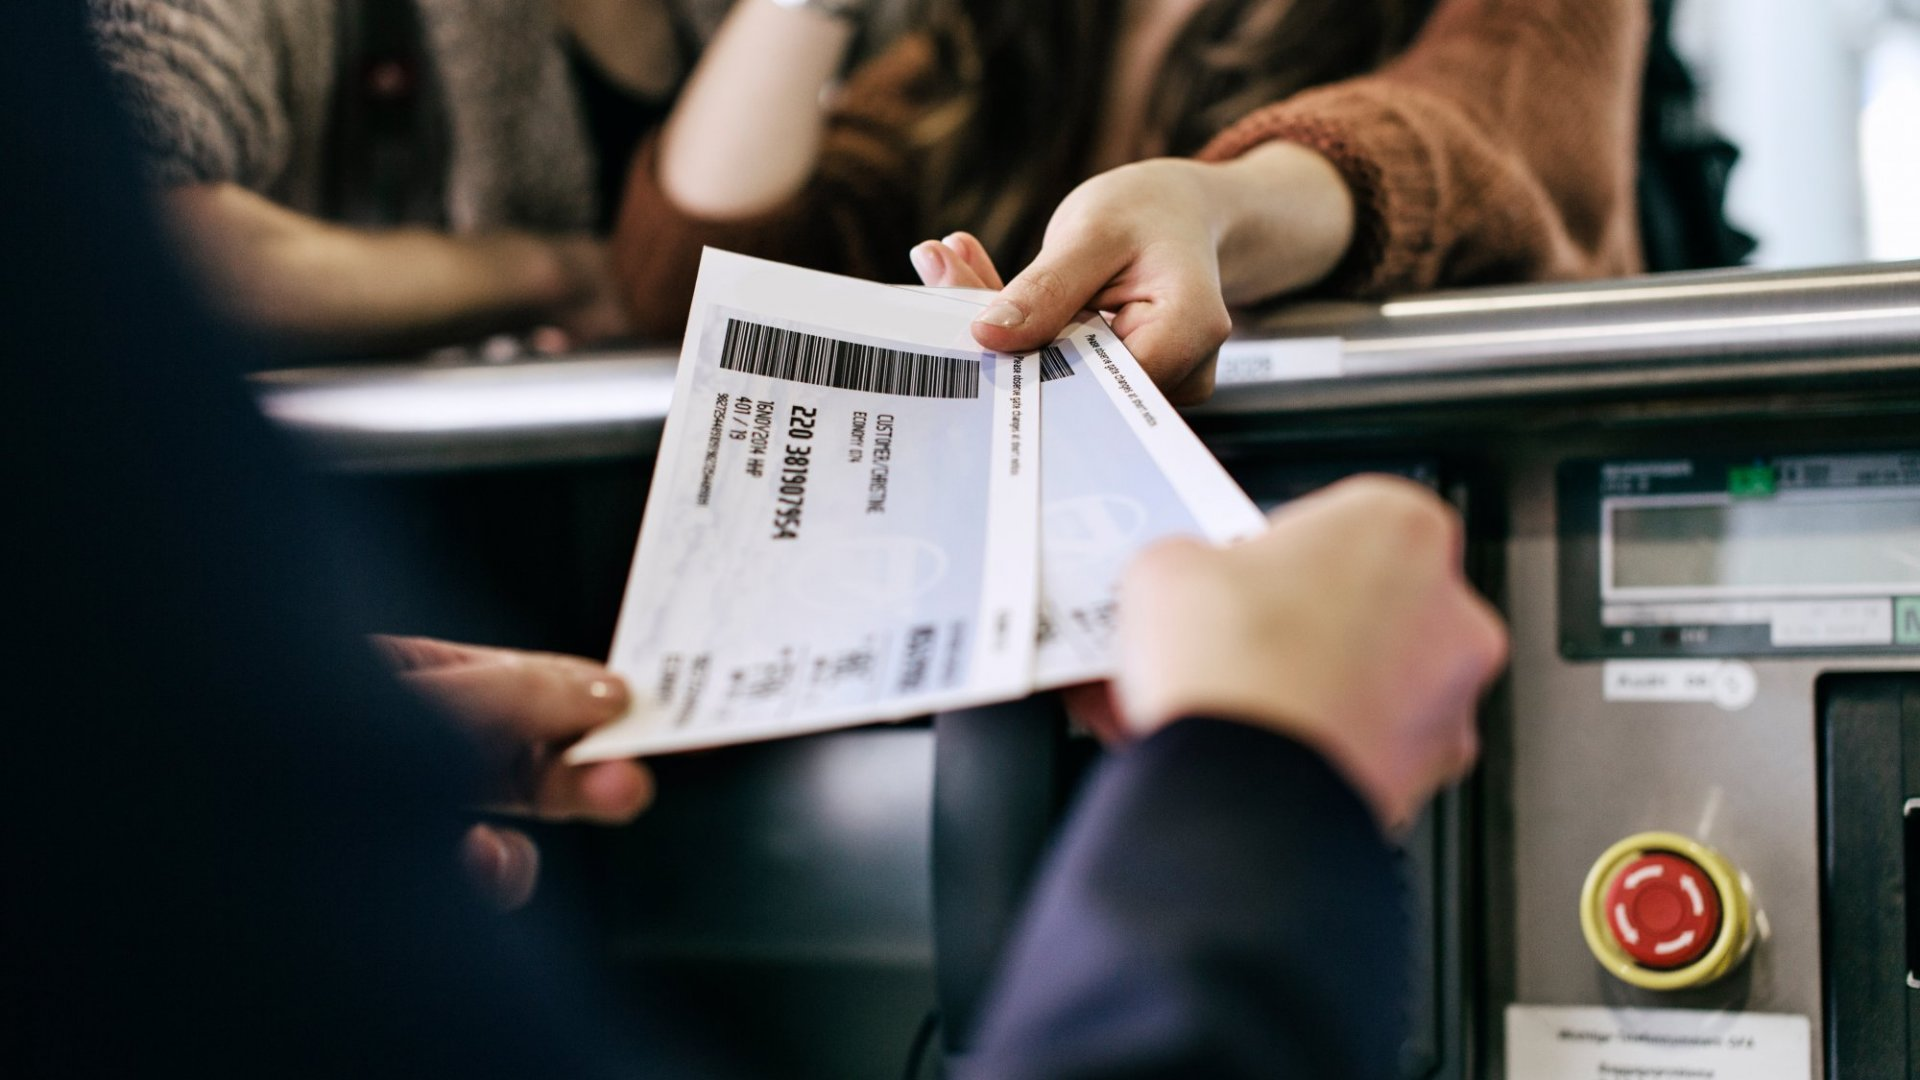 Use the 'Rule of 3' to Get What You Want From Airlines